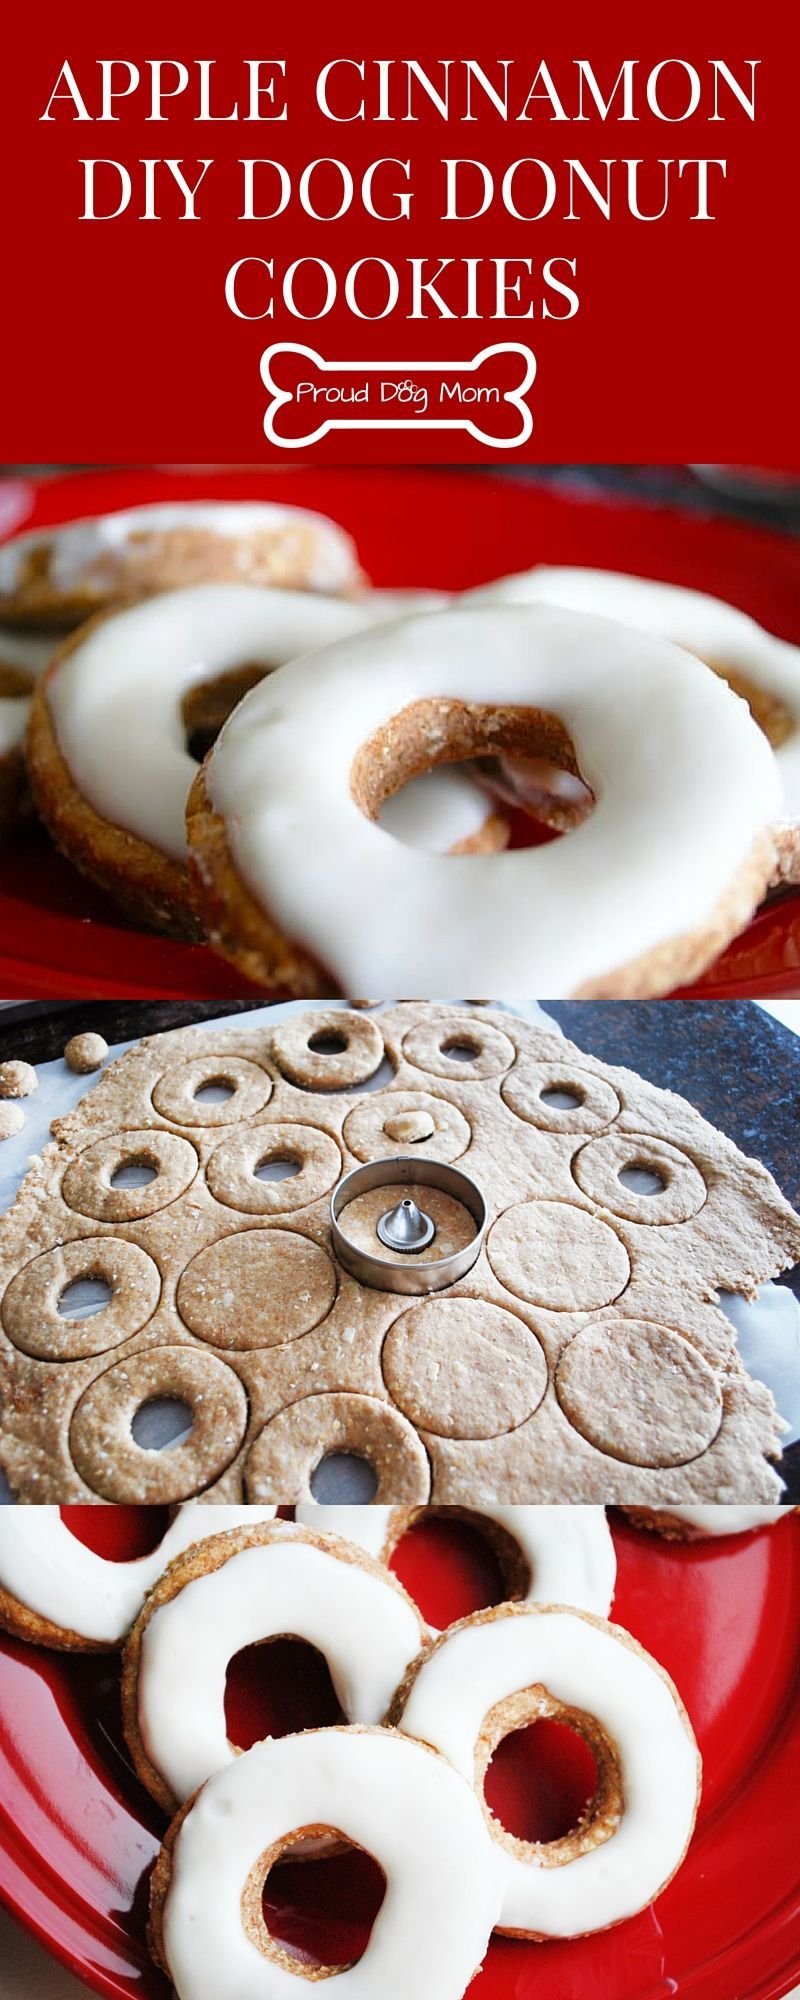 Apple Cinnamon Diy Dog Donut Cookies Recipe Homemade Dog